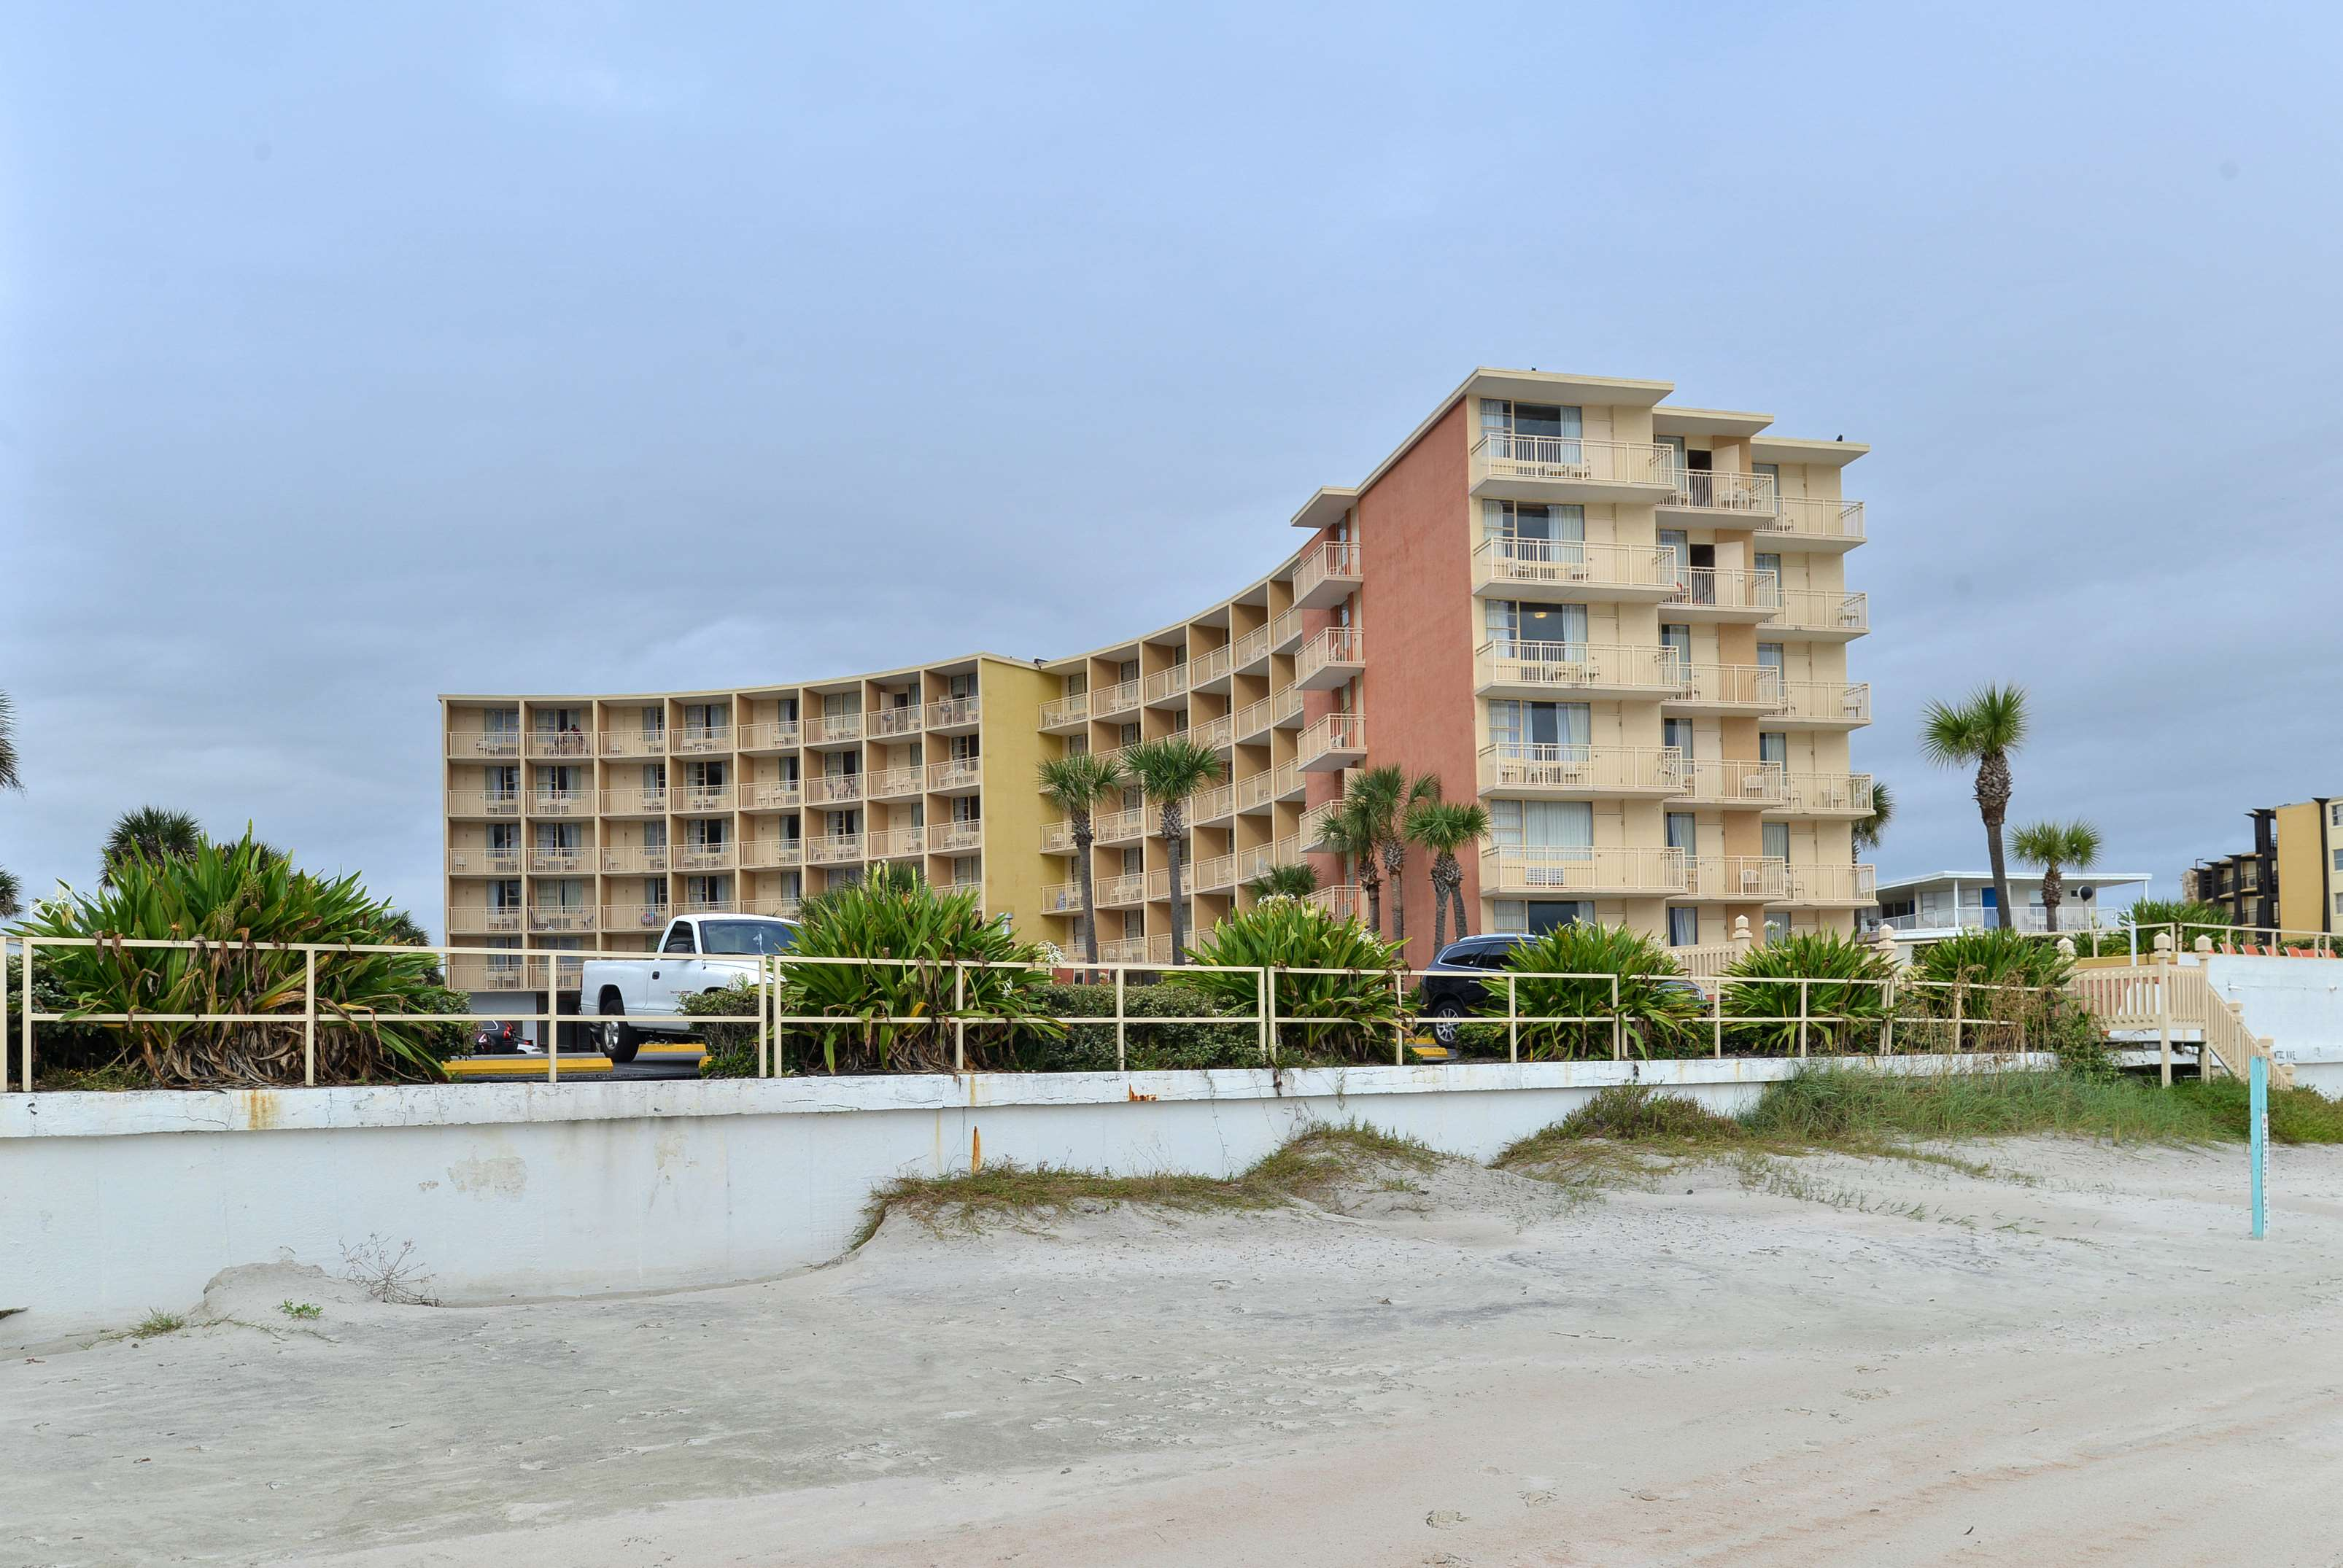 Best Area To Stay At In Daytona Beach